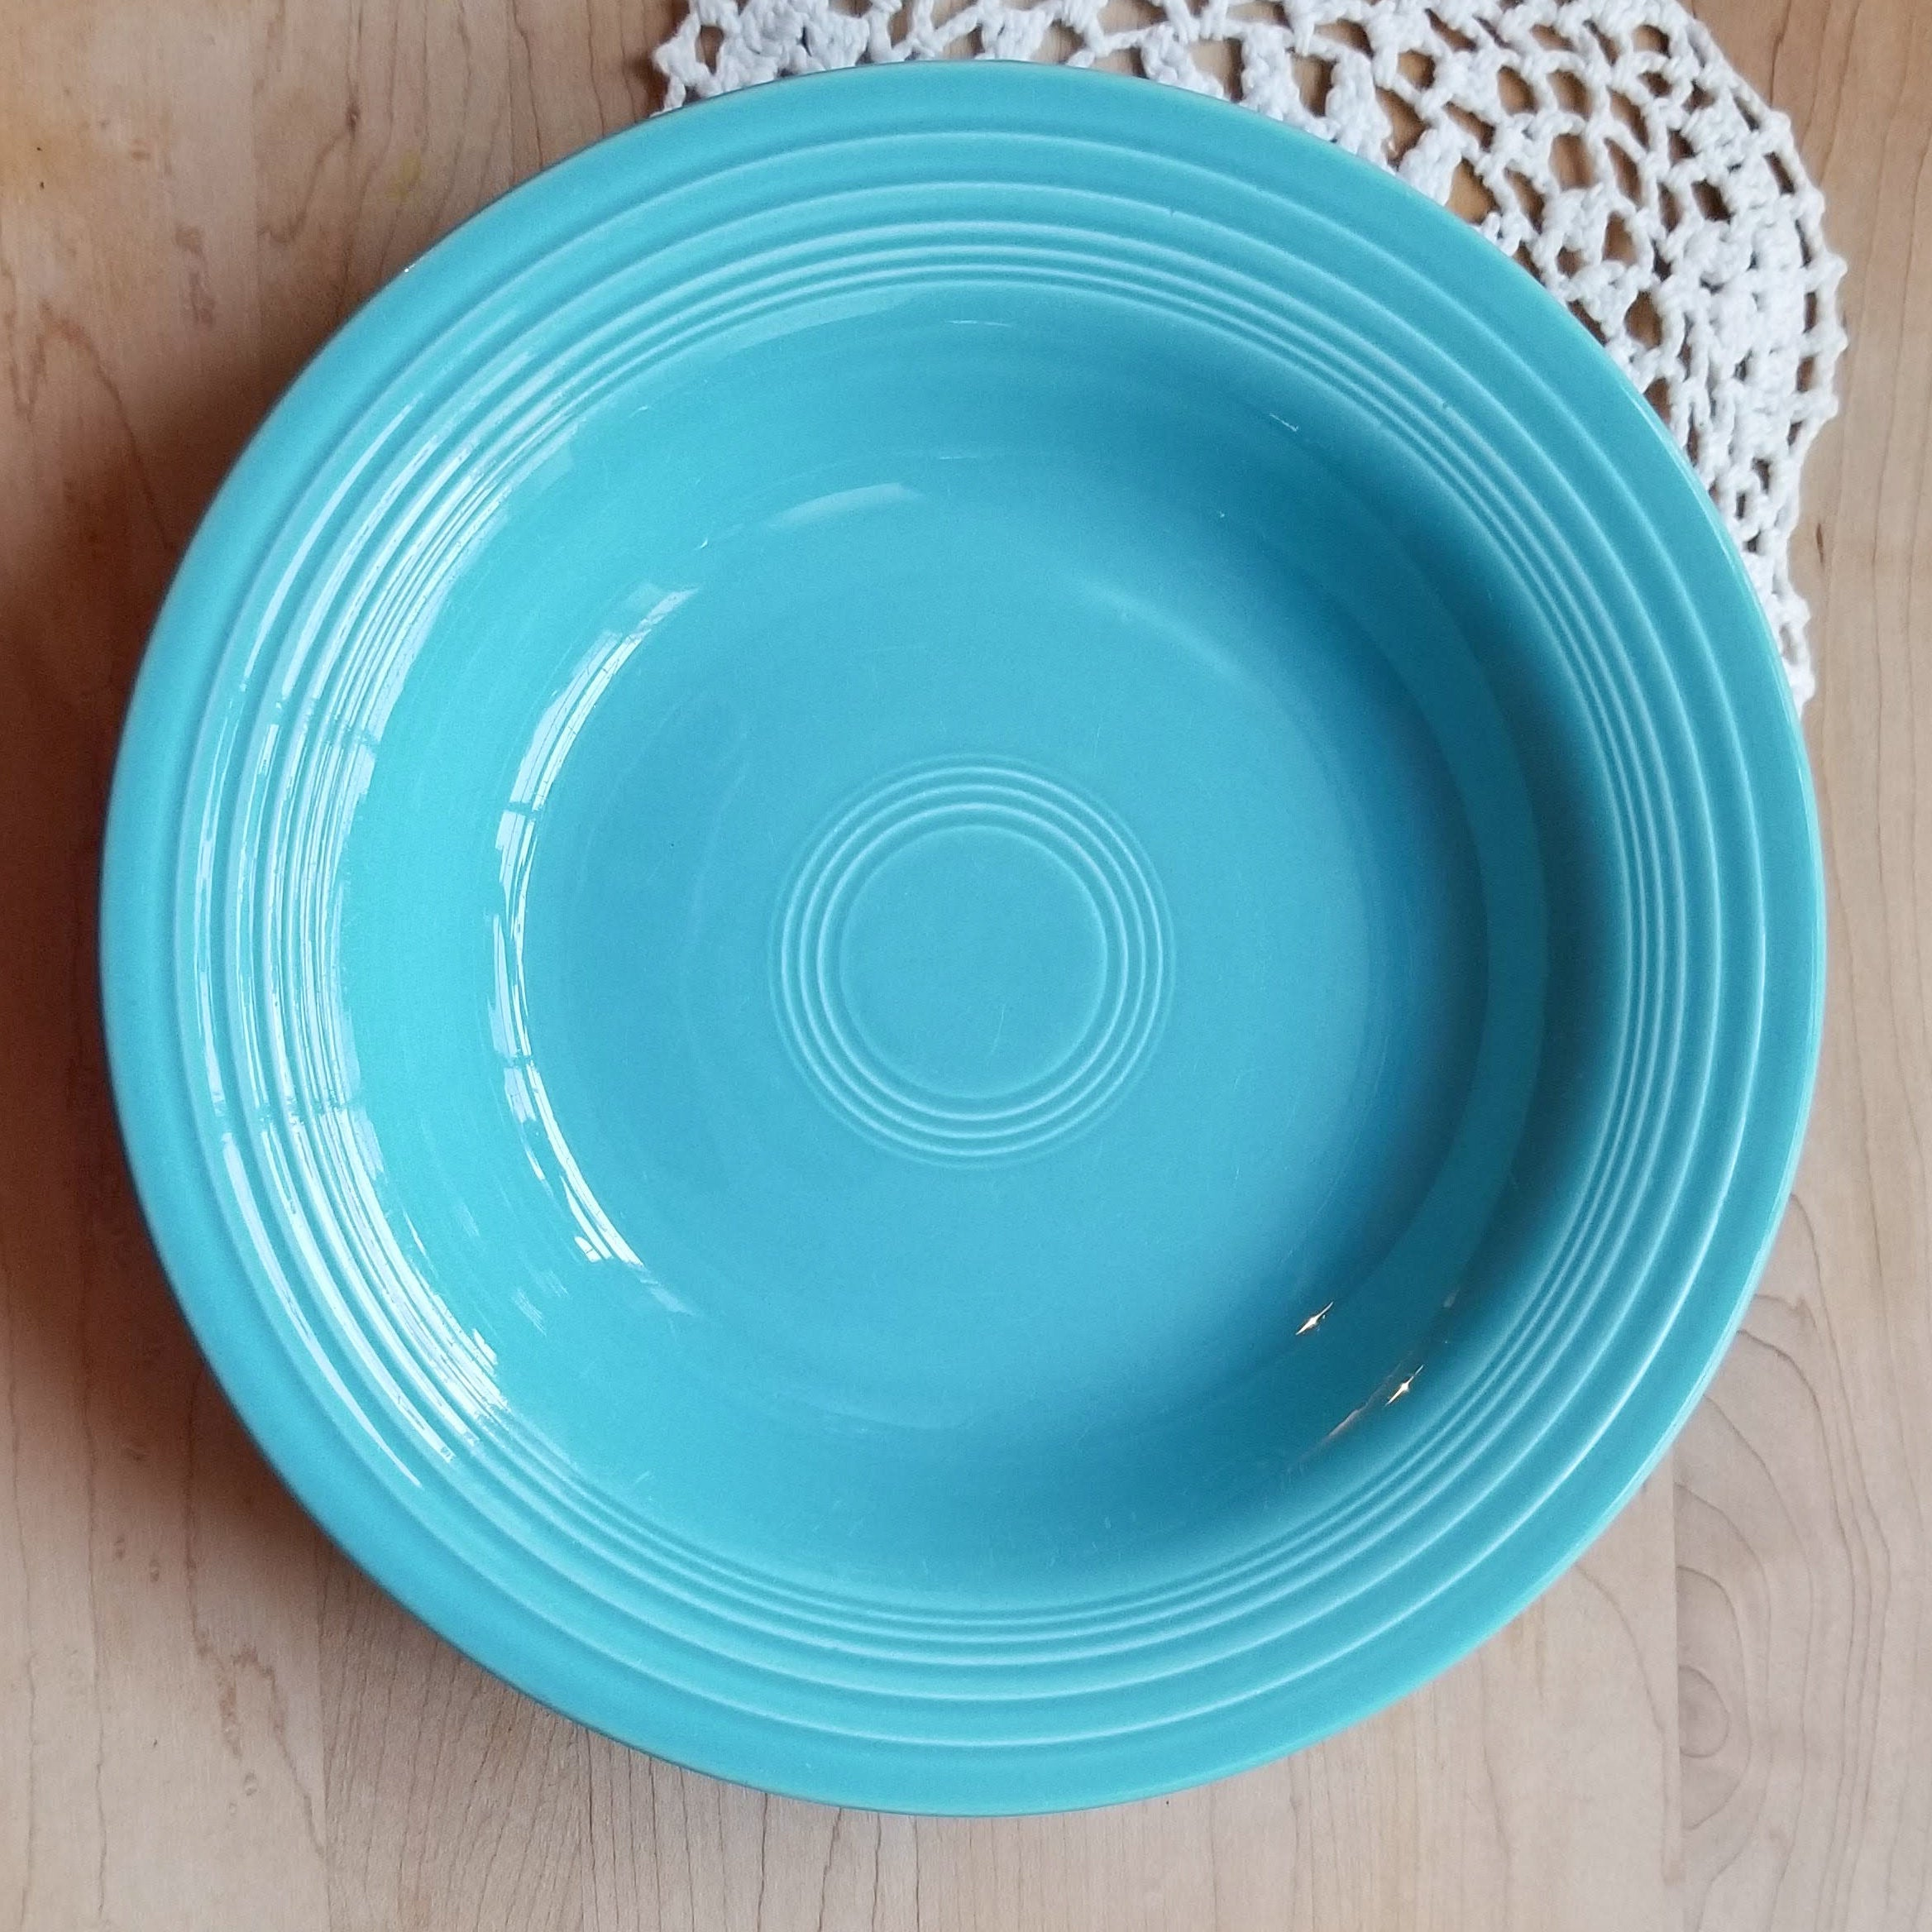 Discontinued Original Rim Soup Bowl and Salt Shaker in Fiesta Turquoise (Older) by HOMER LAUGHLIN